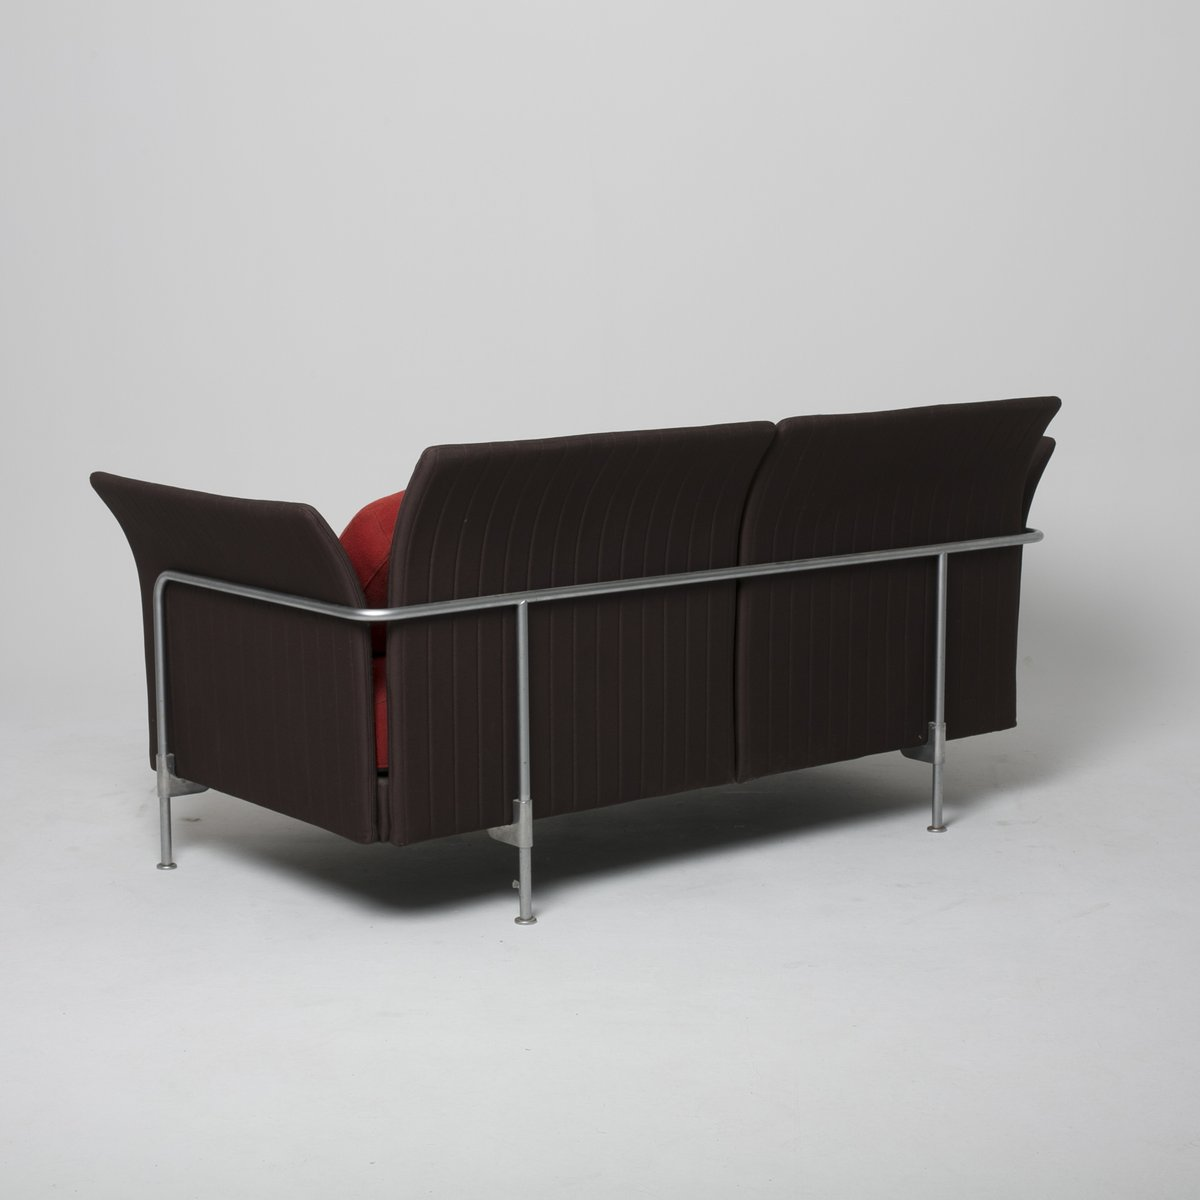 Canap sofa by ronan erwan bouroullec for vitra for sale for Canape furniture